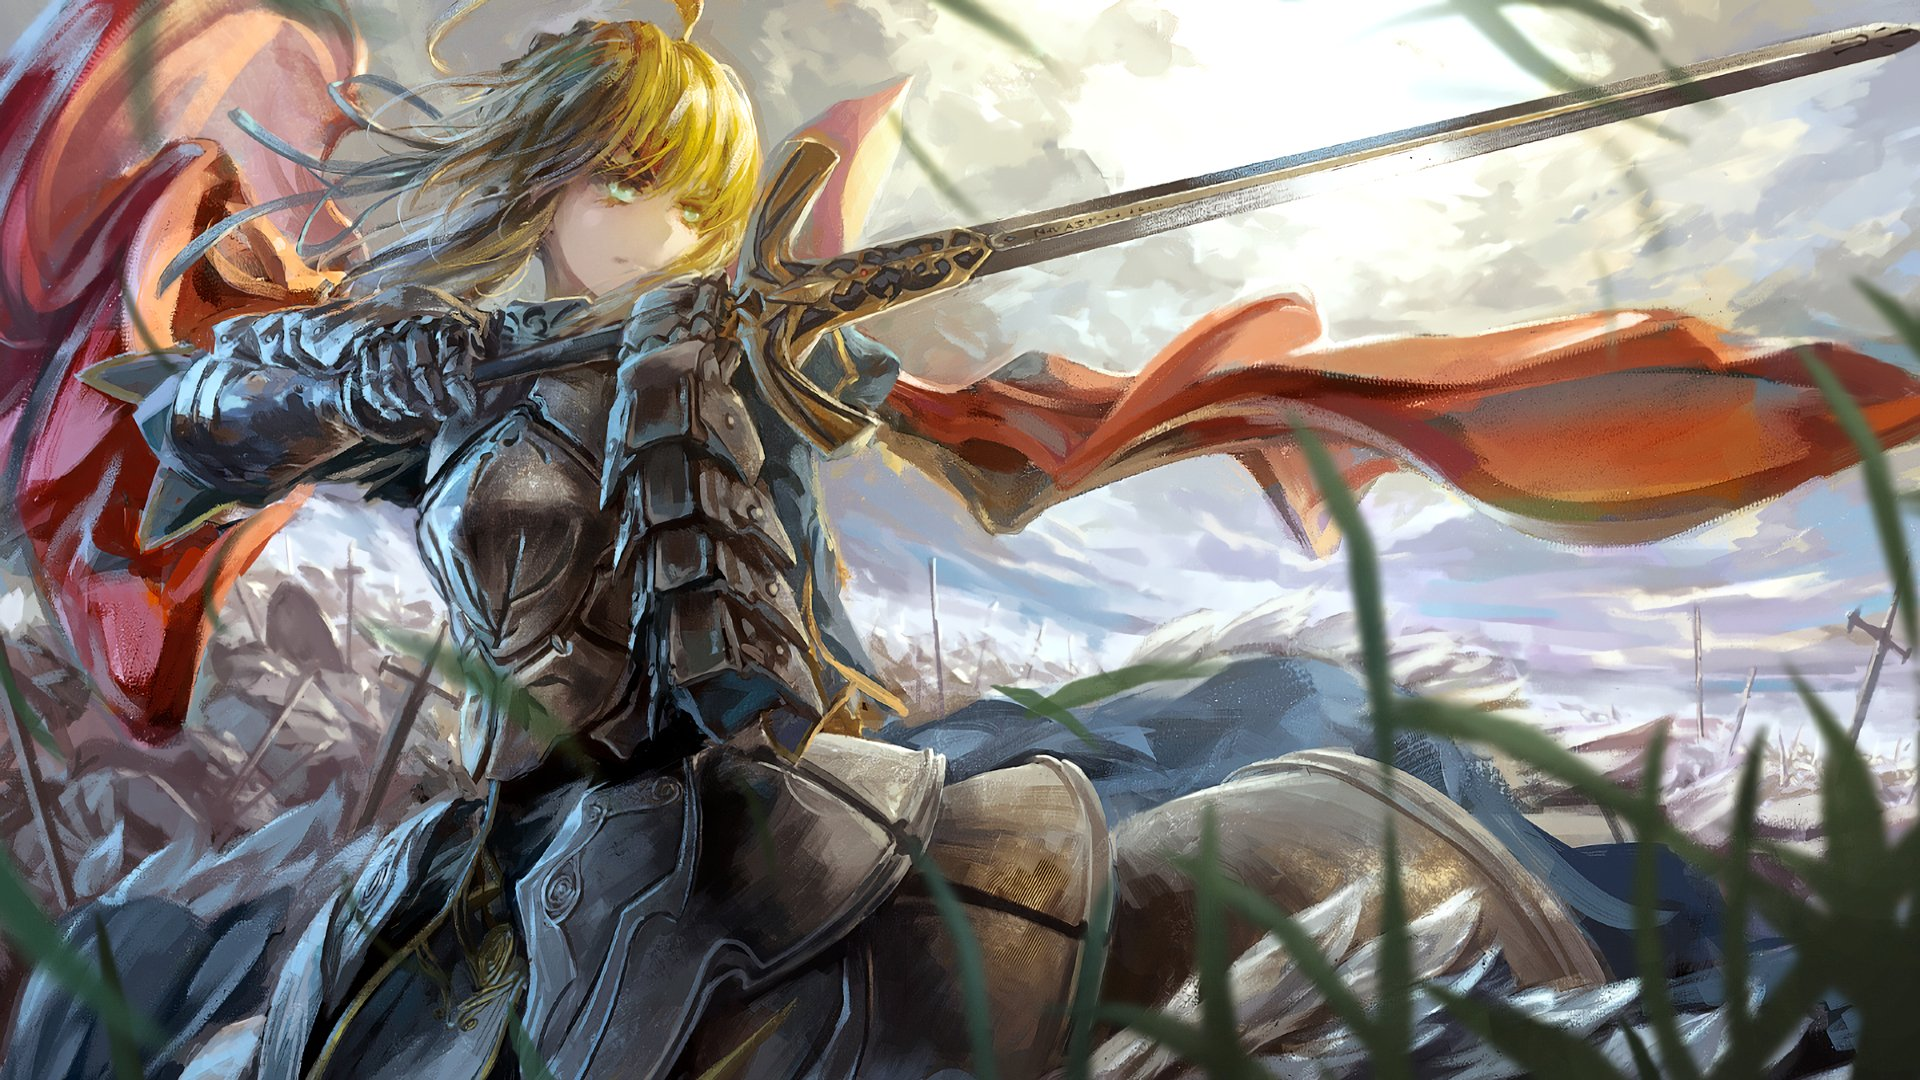 Anime - Fate/Stay Night  Woman Warrior Blonde Saber (Fate Series) Sword Armor Wallpaper